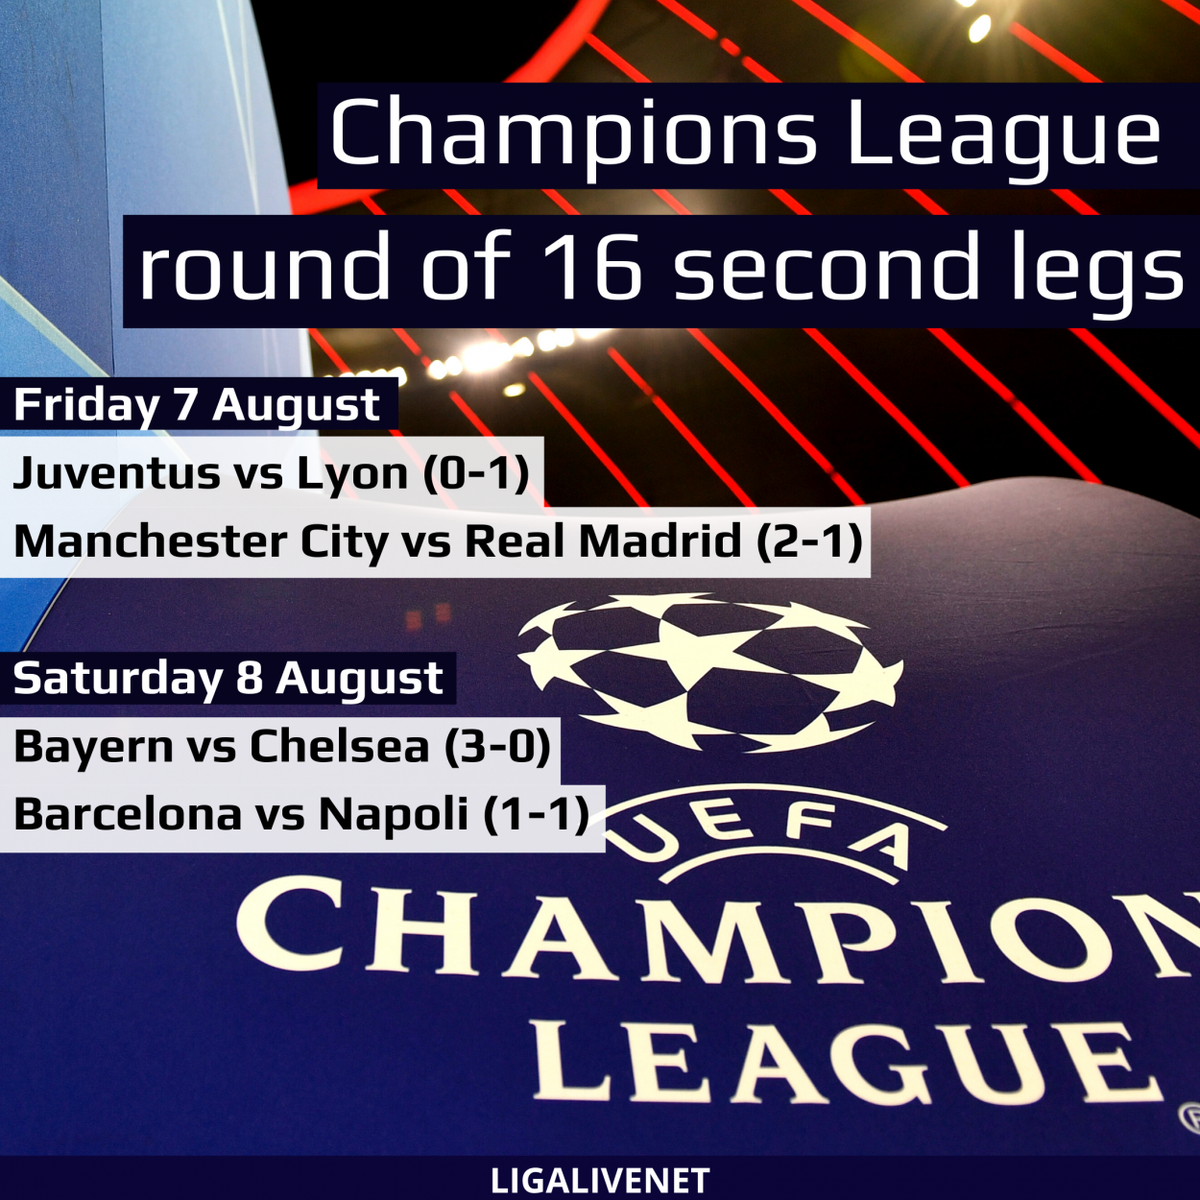 Champions League round of 16 second legs http://ow.ly/Z9cY102iwhU  #football #soccer #ligalivepic.twitter.com/vw5QI4V4Jg